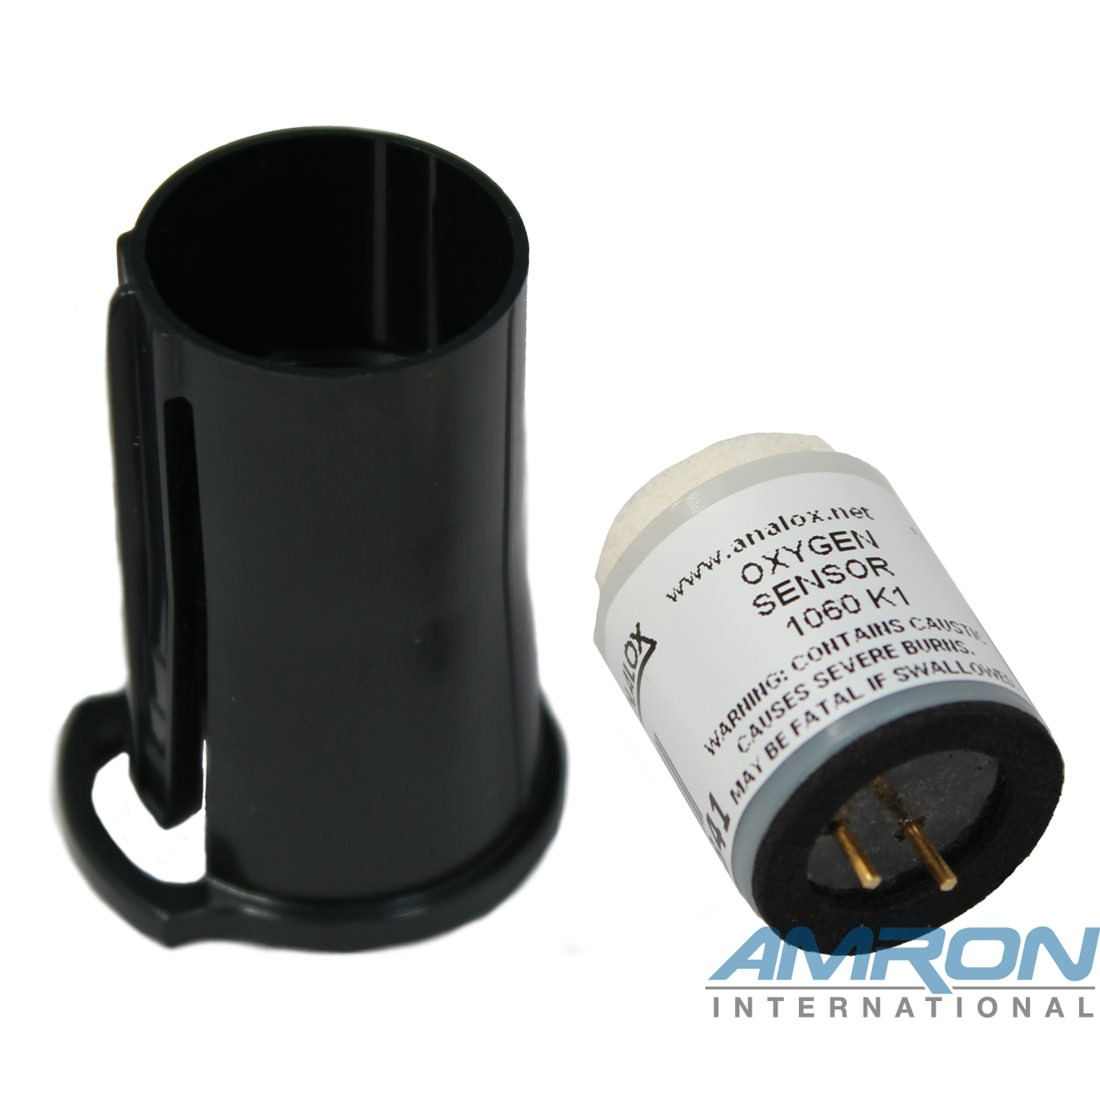 Analox 9100-1060RK Replacement O2 Sensor and Extraction Kit for the ADM Aspida